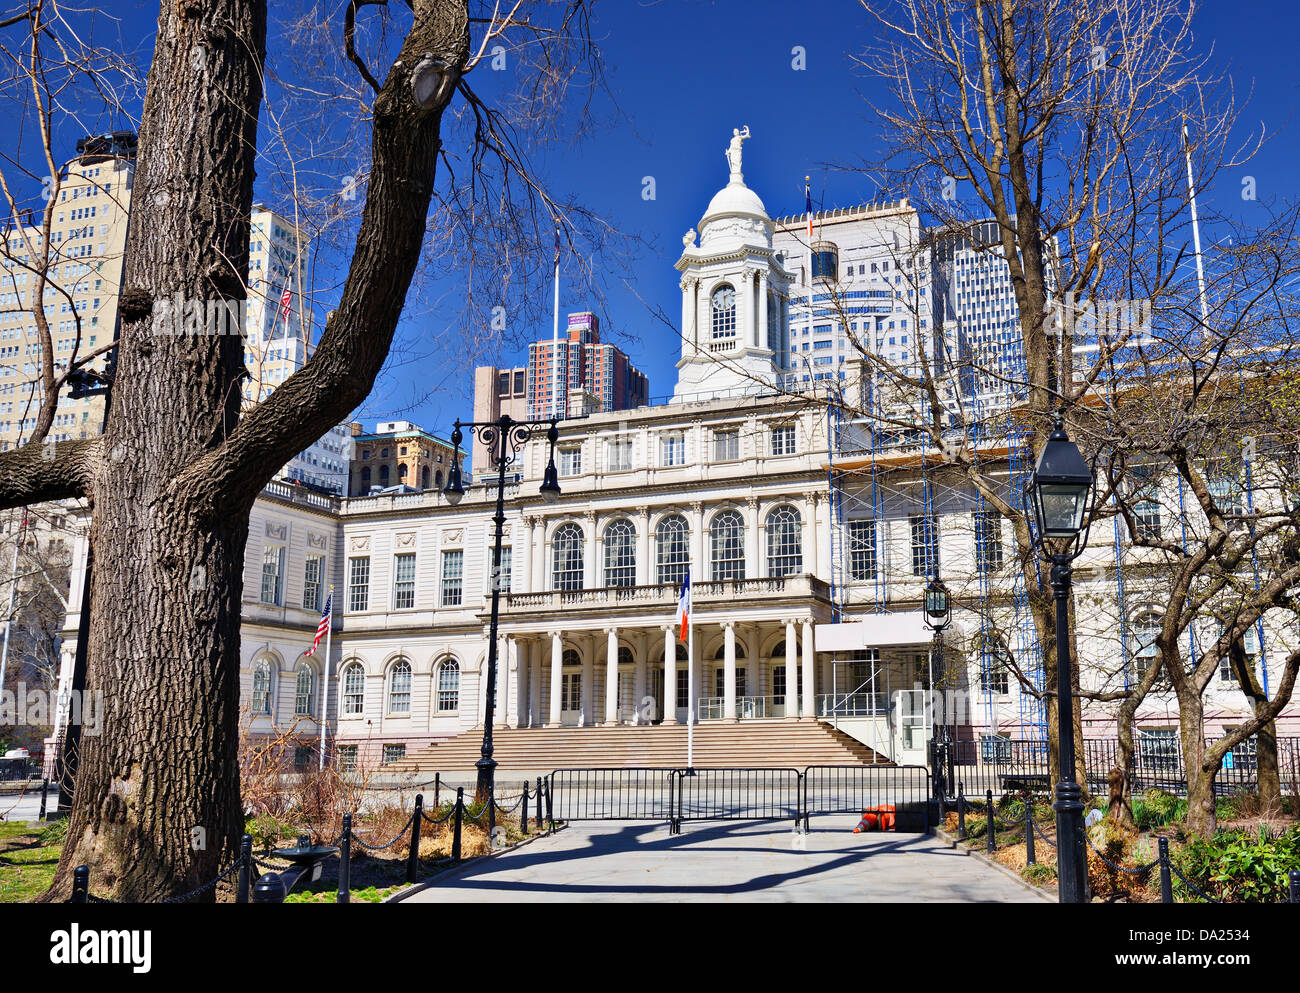 City Hall building of New York City, USA. - Stock Image